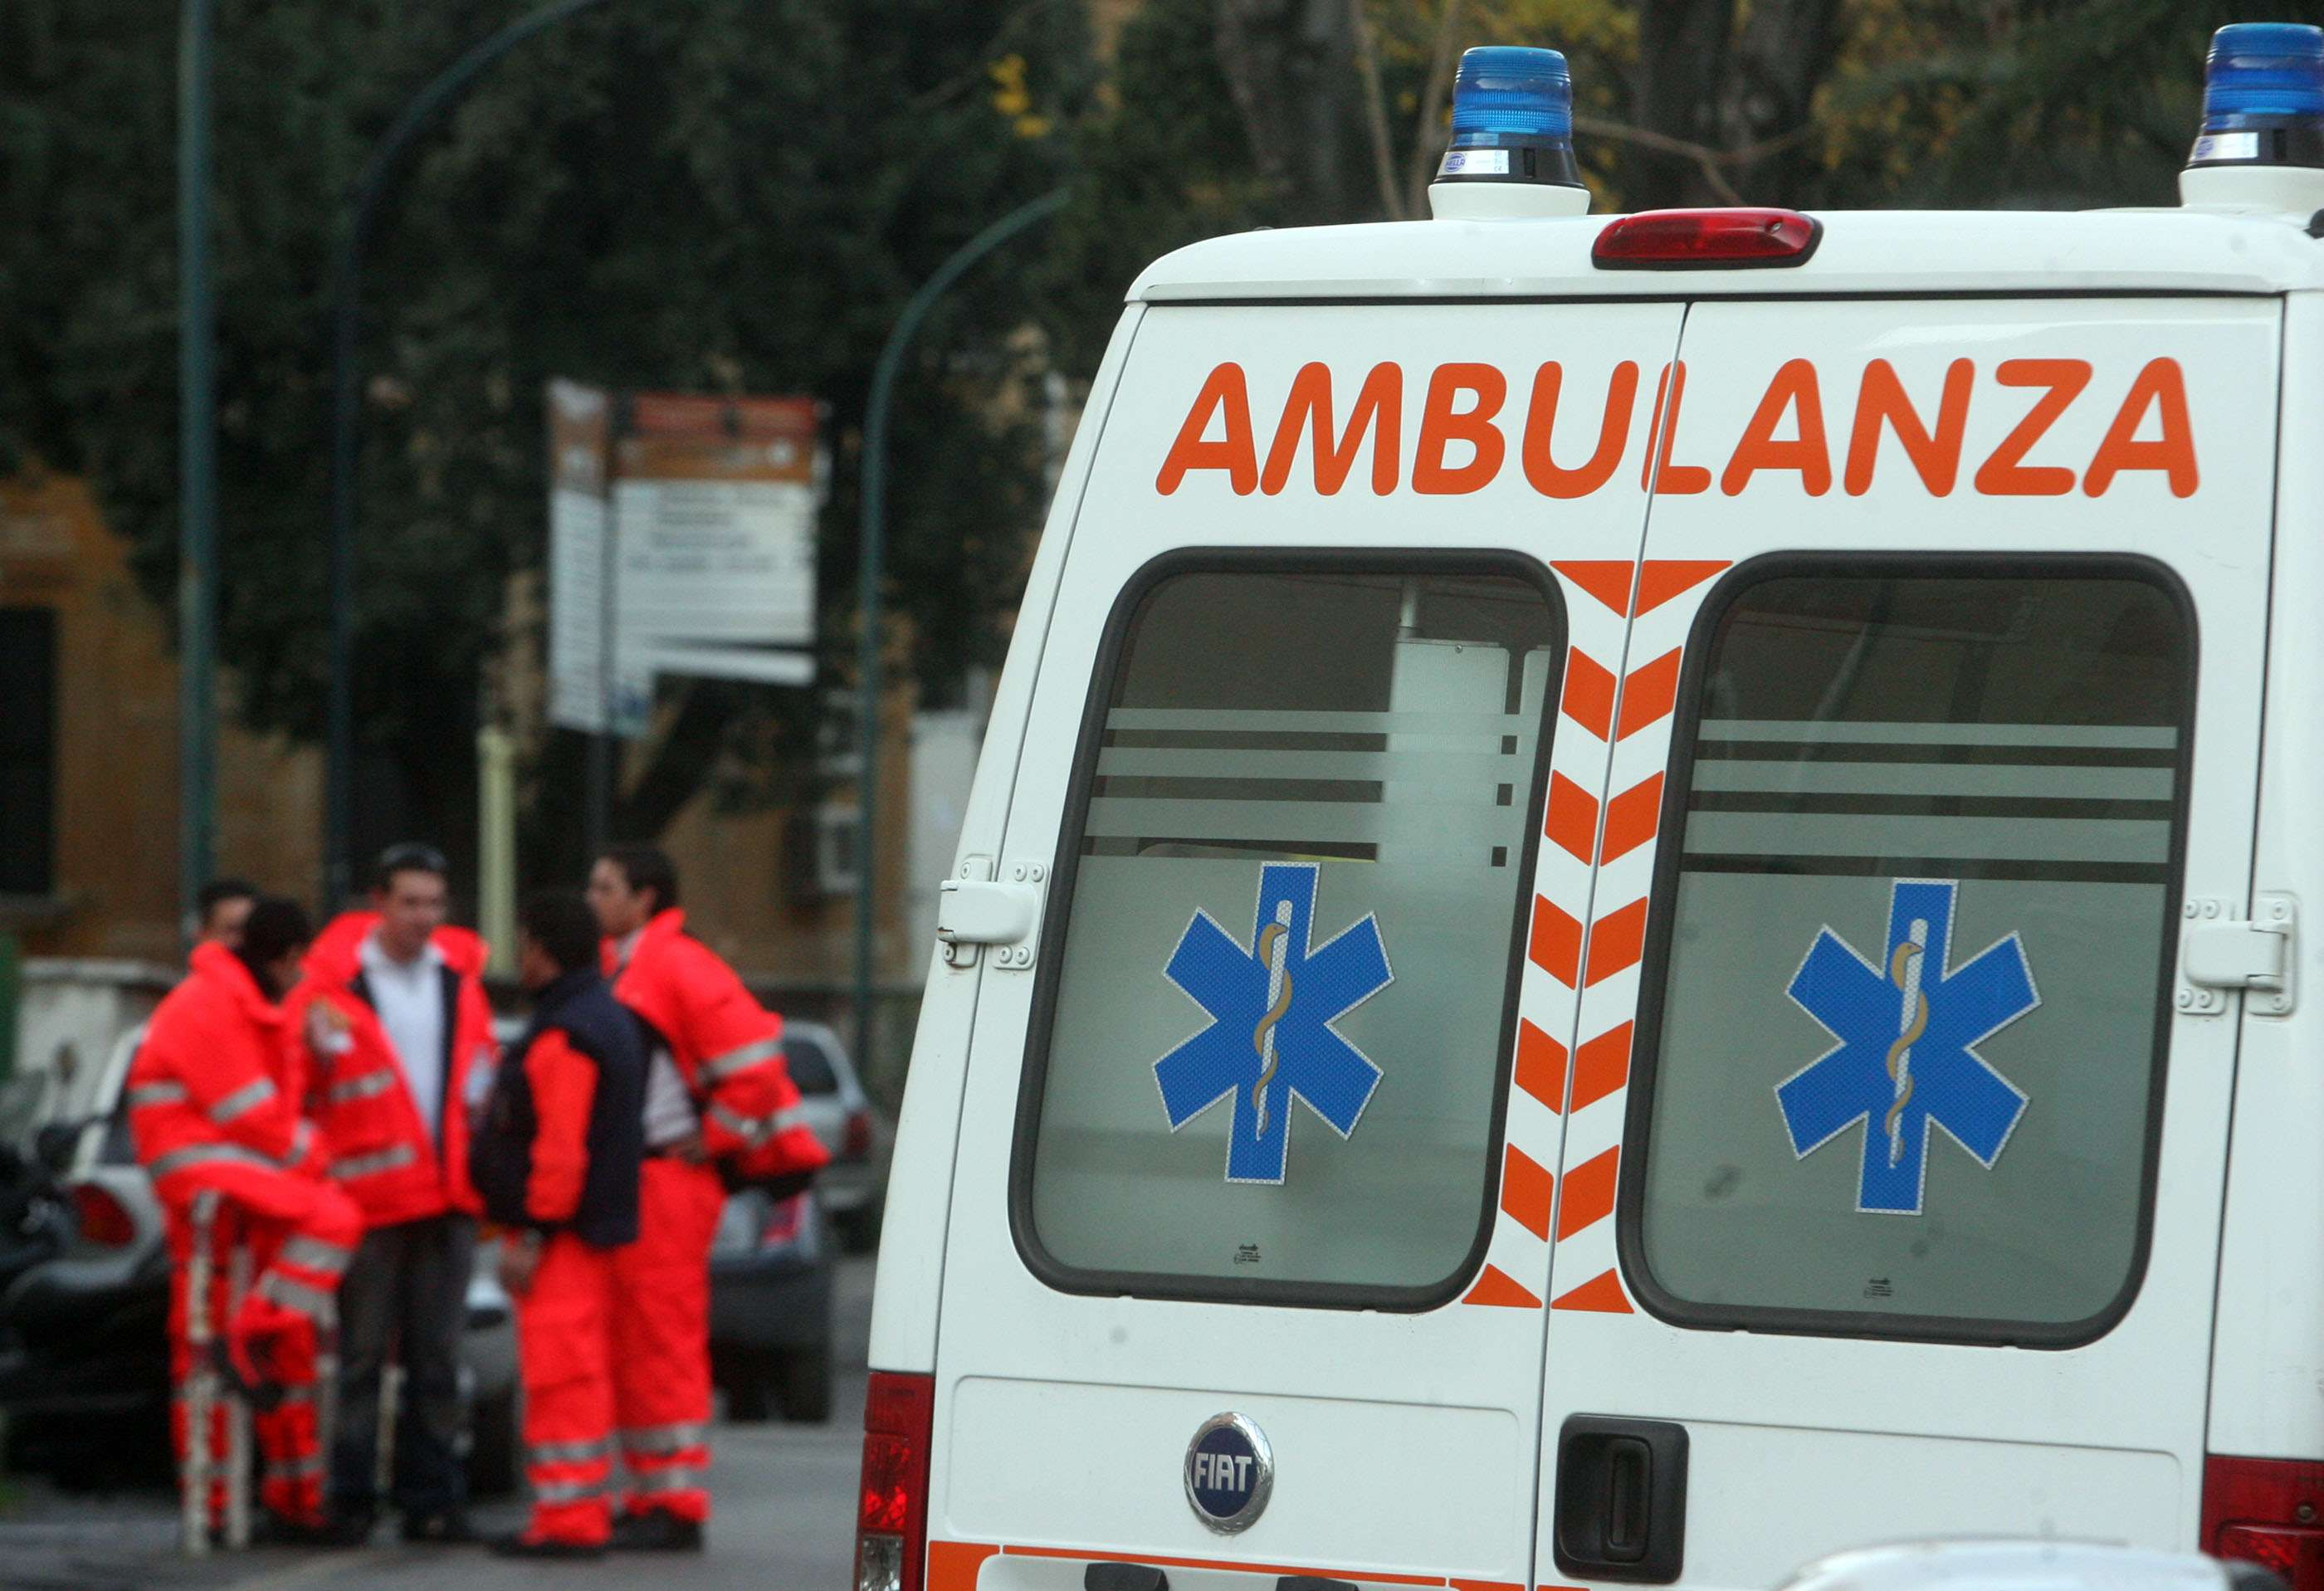 118. Personale aggredito, ambulanze obsolete e senza medici a bordo